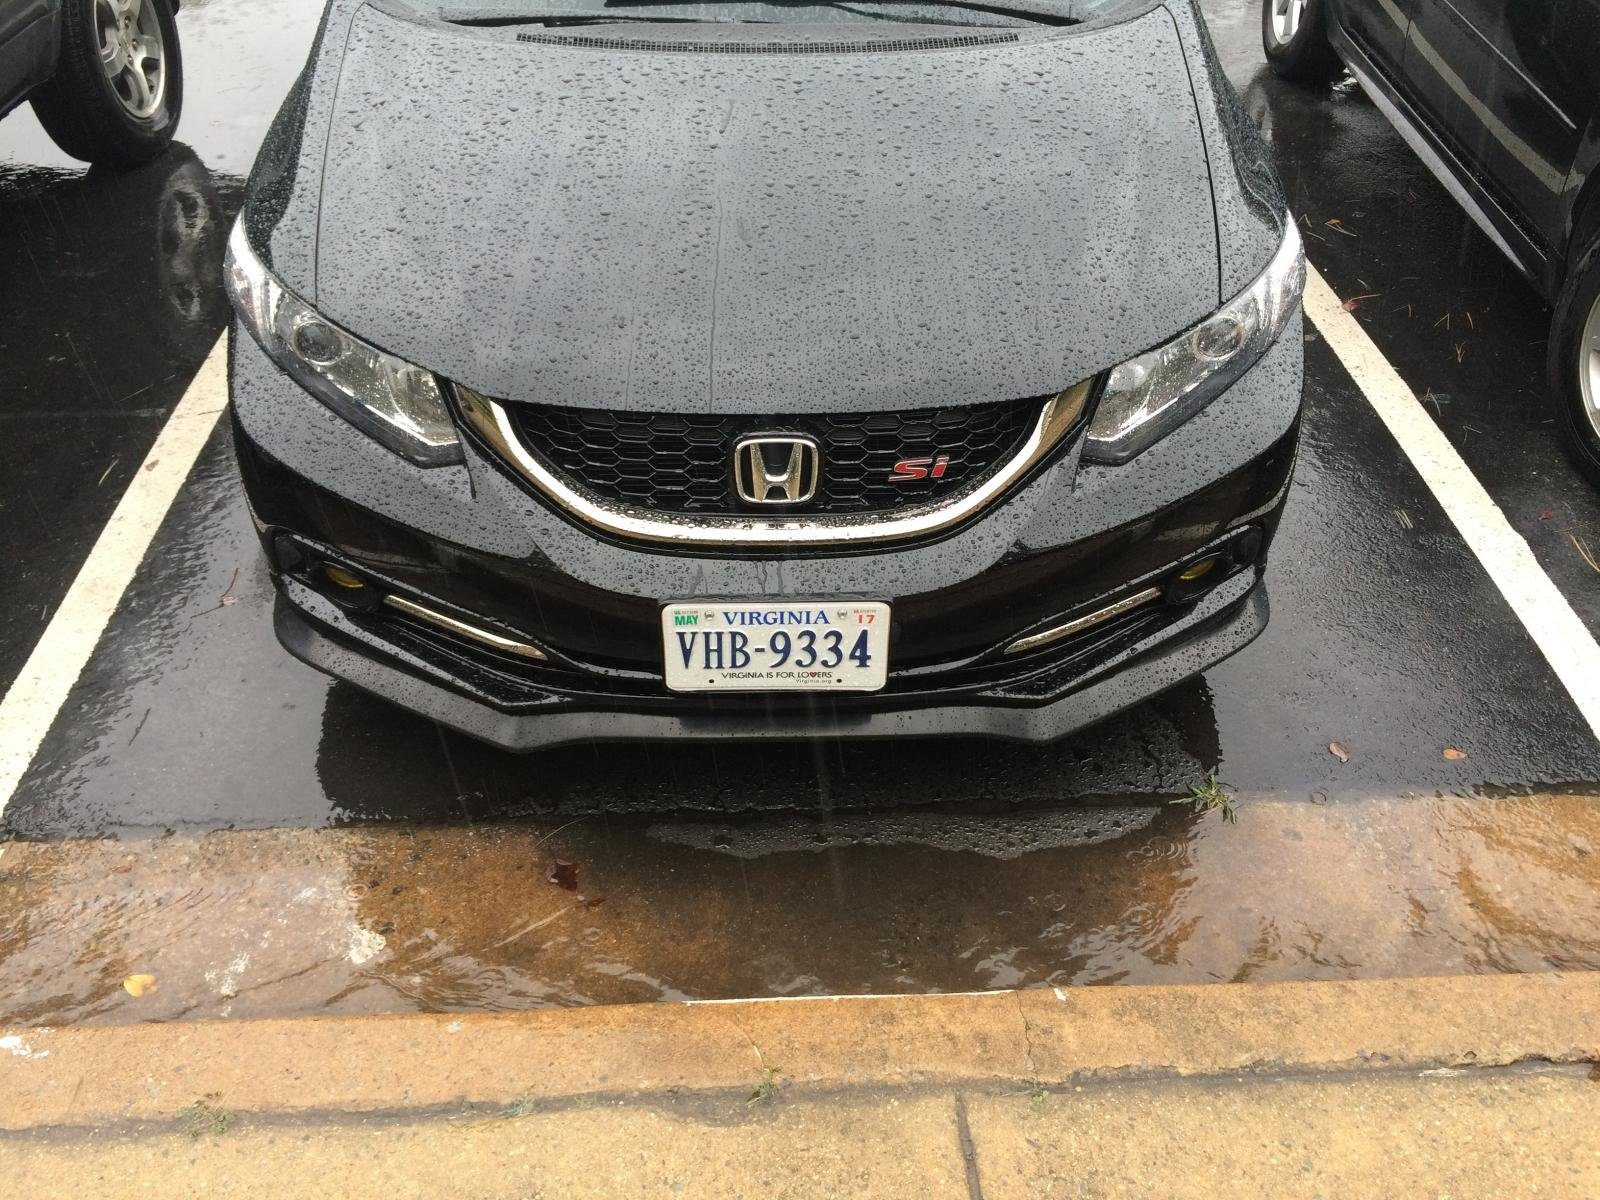 Type a front lip on 2014 civic si sedan looks really good img_2448